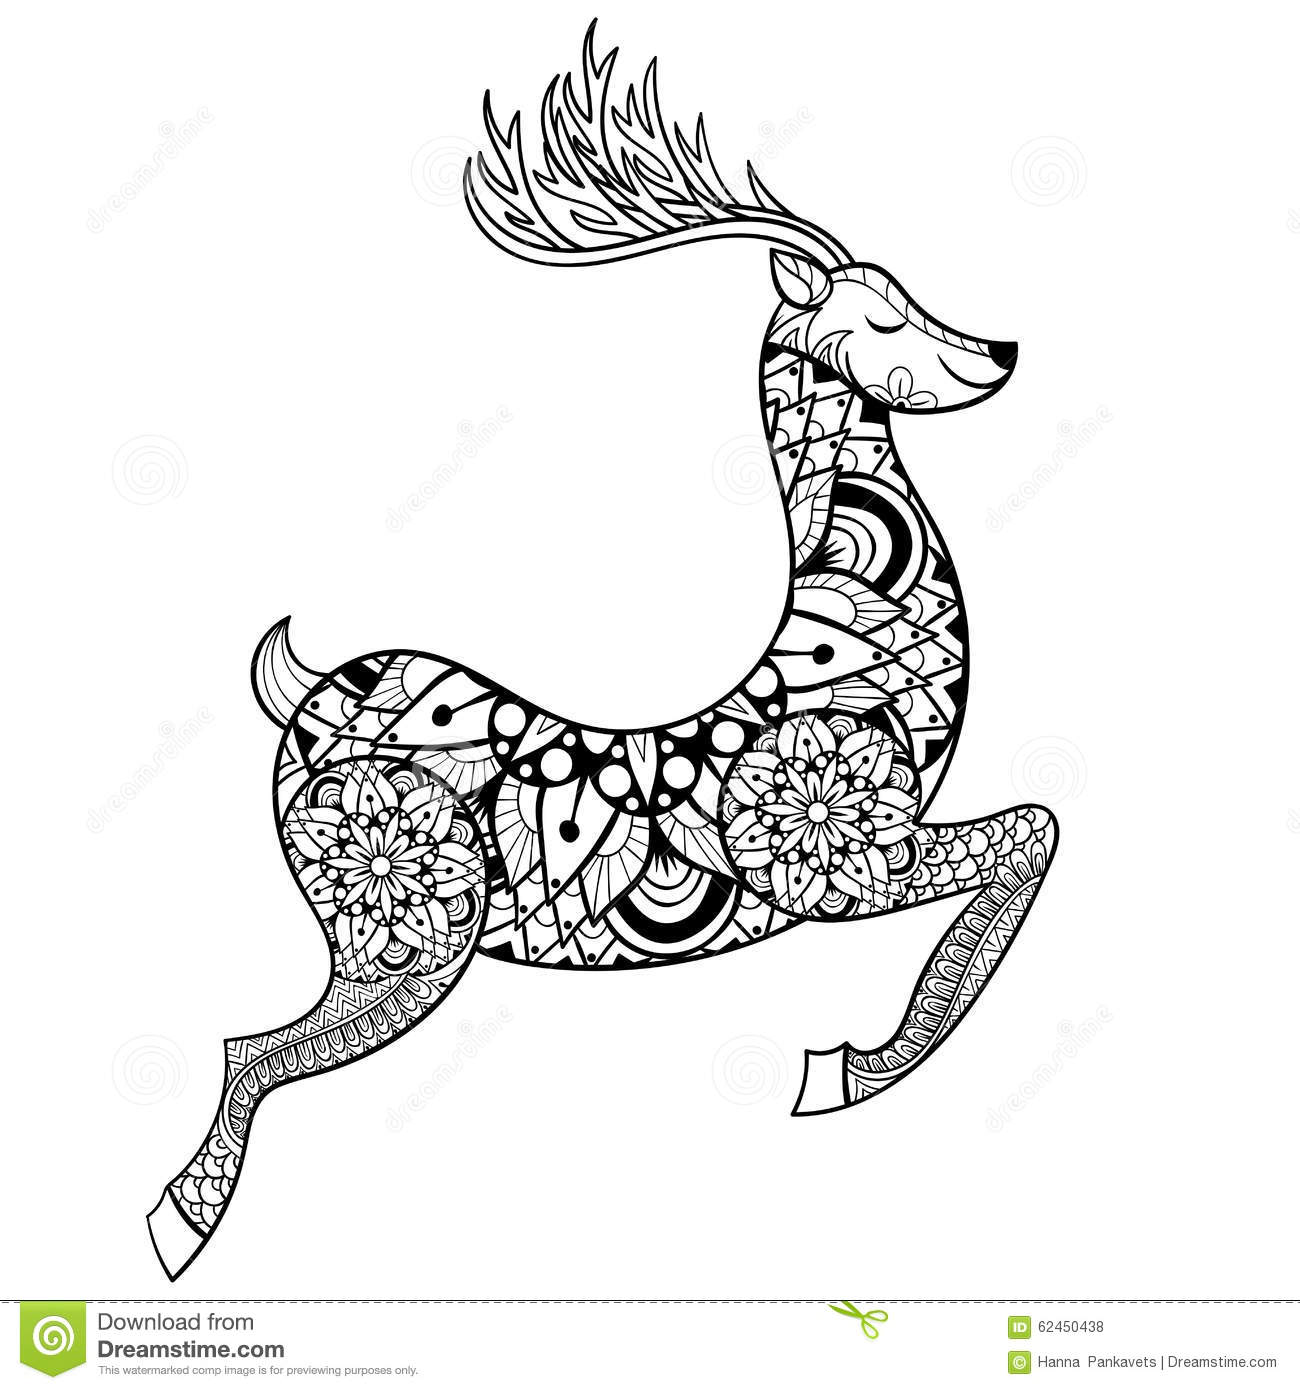 Christmas Vacation Coloring Book With Zentangle Vector Reindeer For Adult Anti Stress Pages